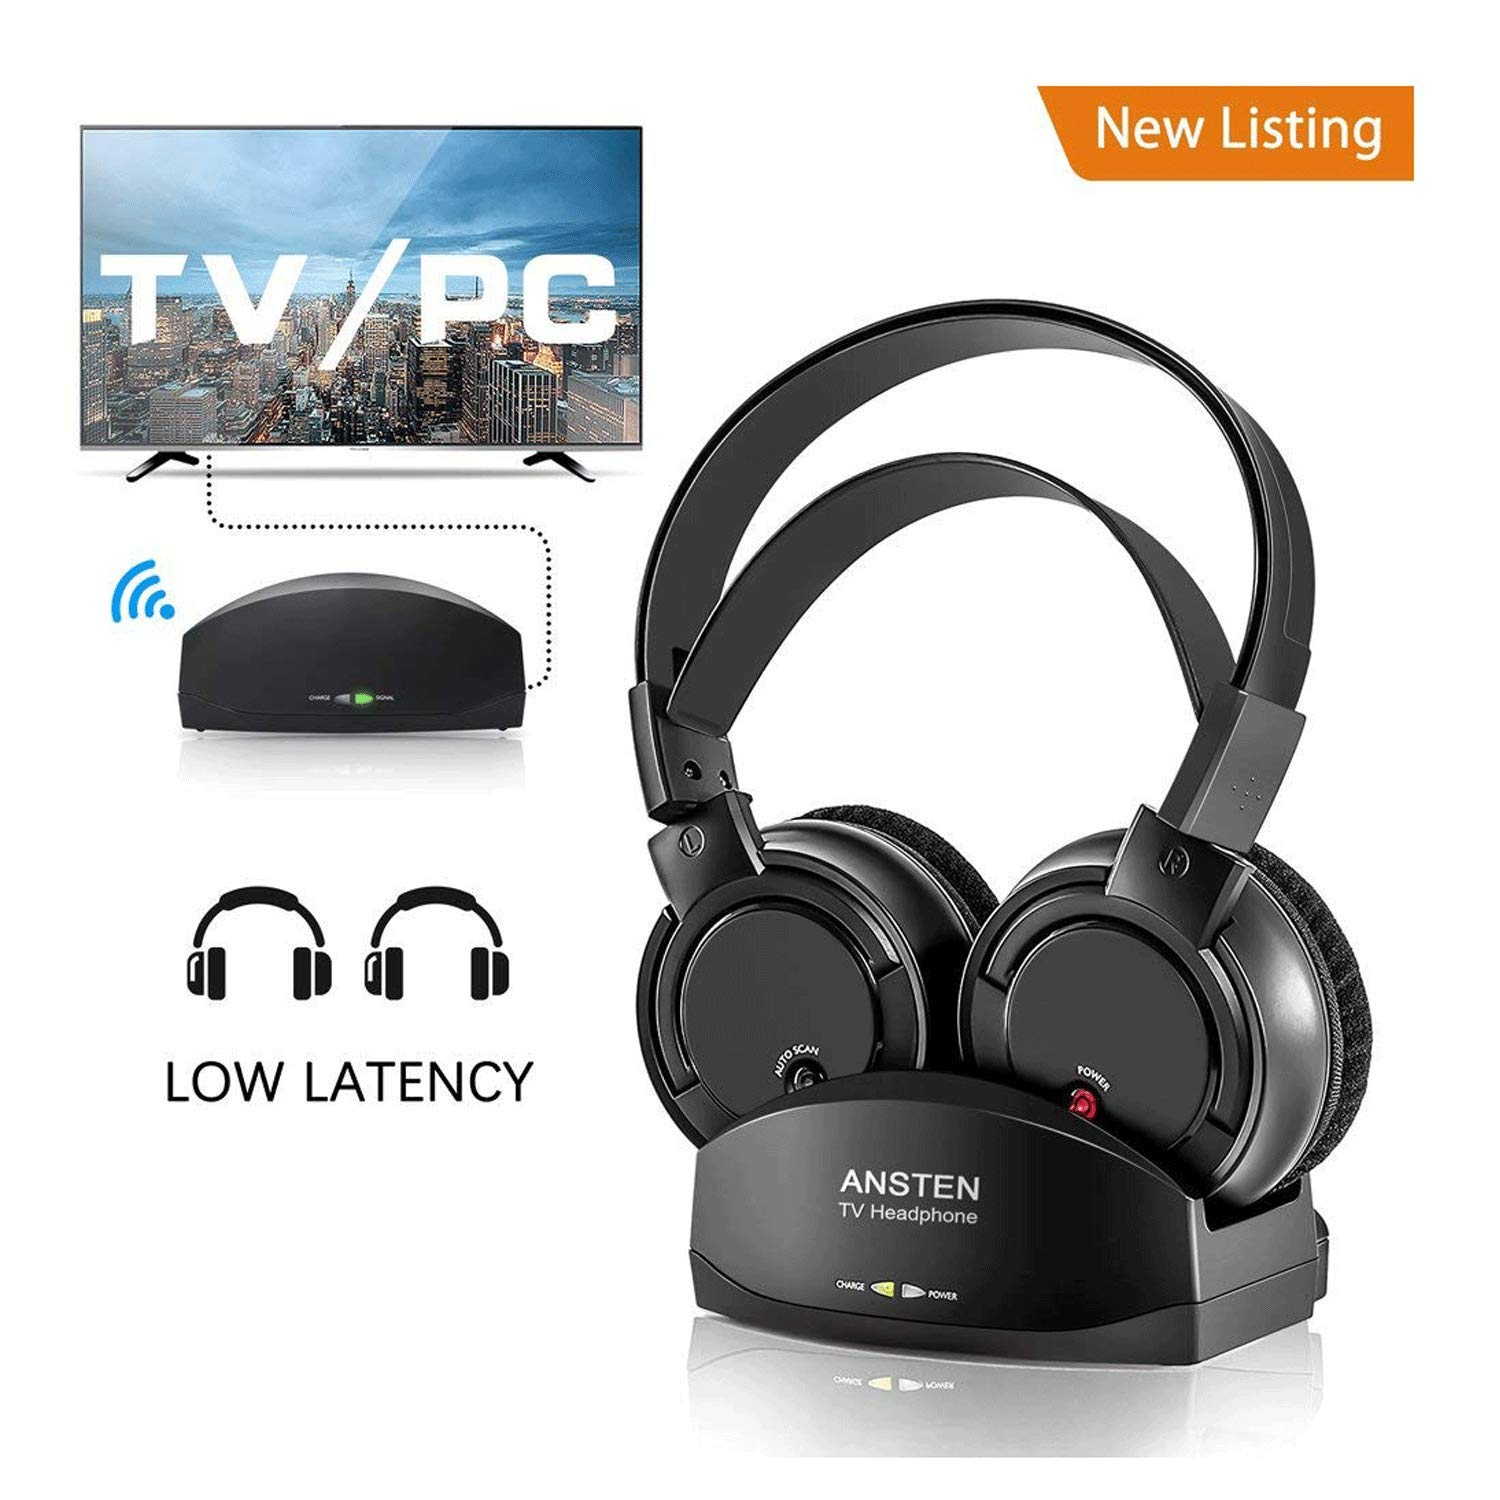 Wireless Headphones for TV With Charging Dock,over the Ear Stereo Headset with RF Transmitter,Adjustable,Lightweight,Cordless Design For Gaming PC,Iphone Ipad 25hr Battery